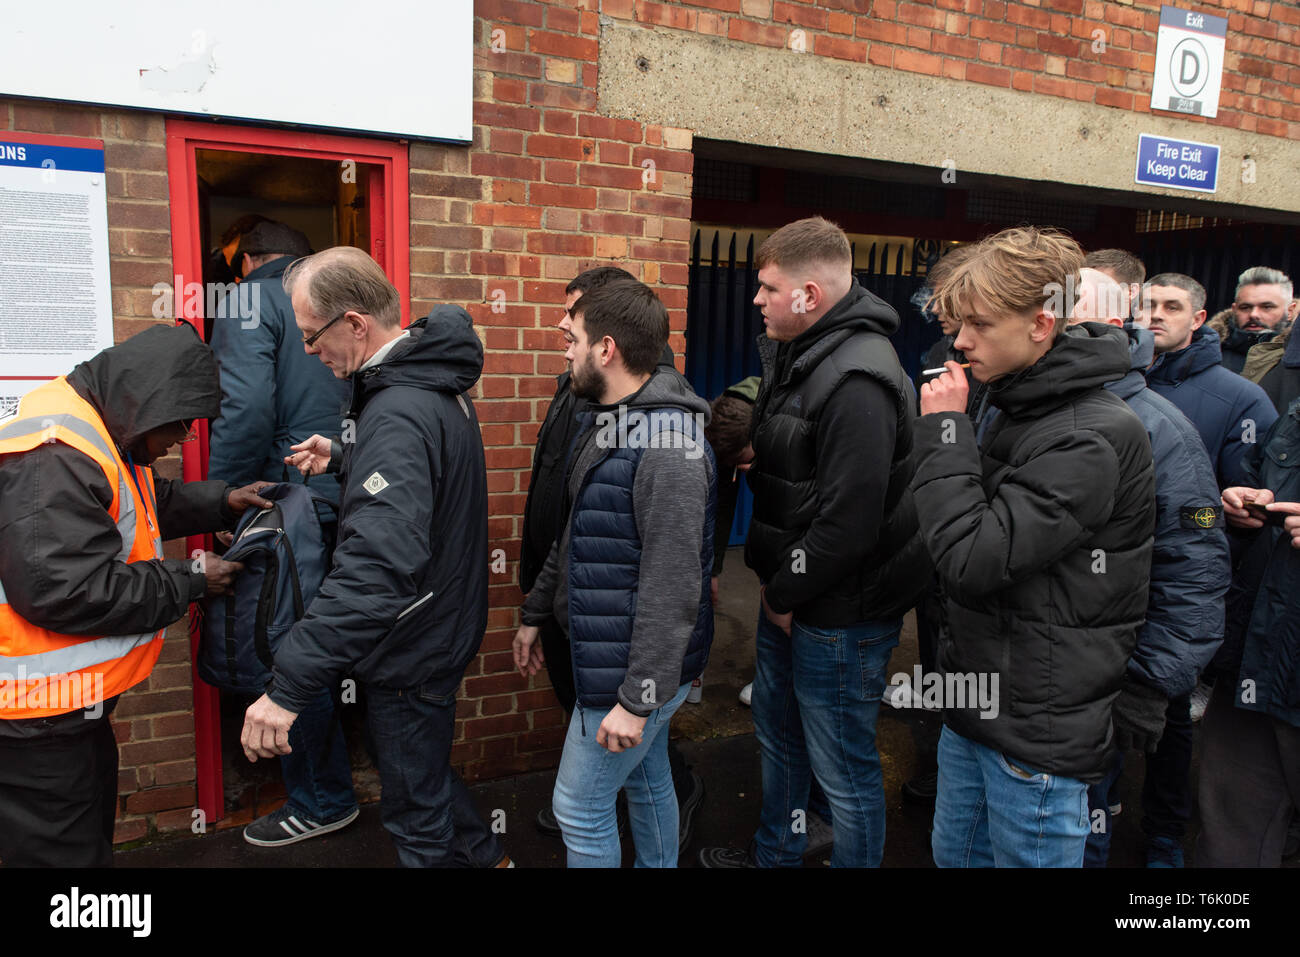 Tottenham Hotspur's fans are searched before entering Selhurst Park for a FA Cup tie against Crystal Palace. - Stock Image